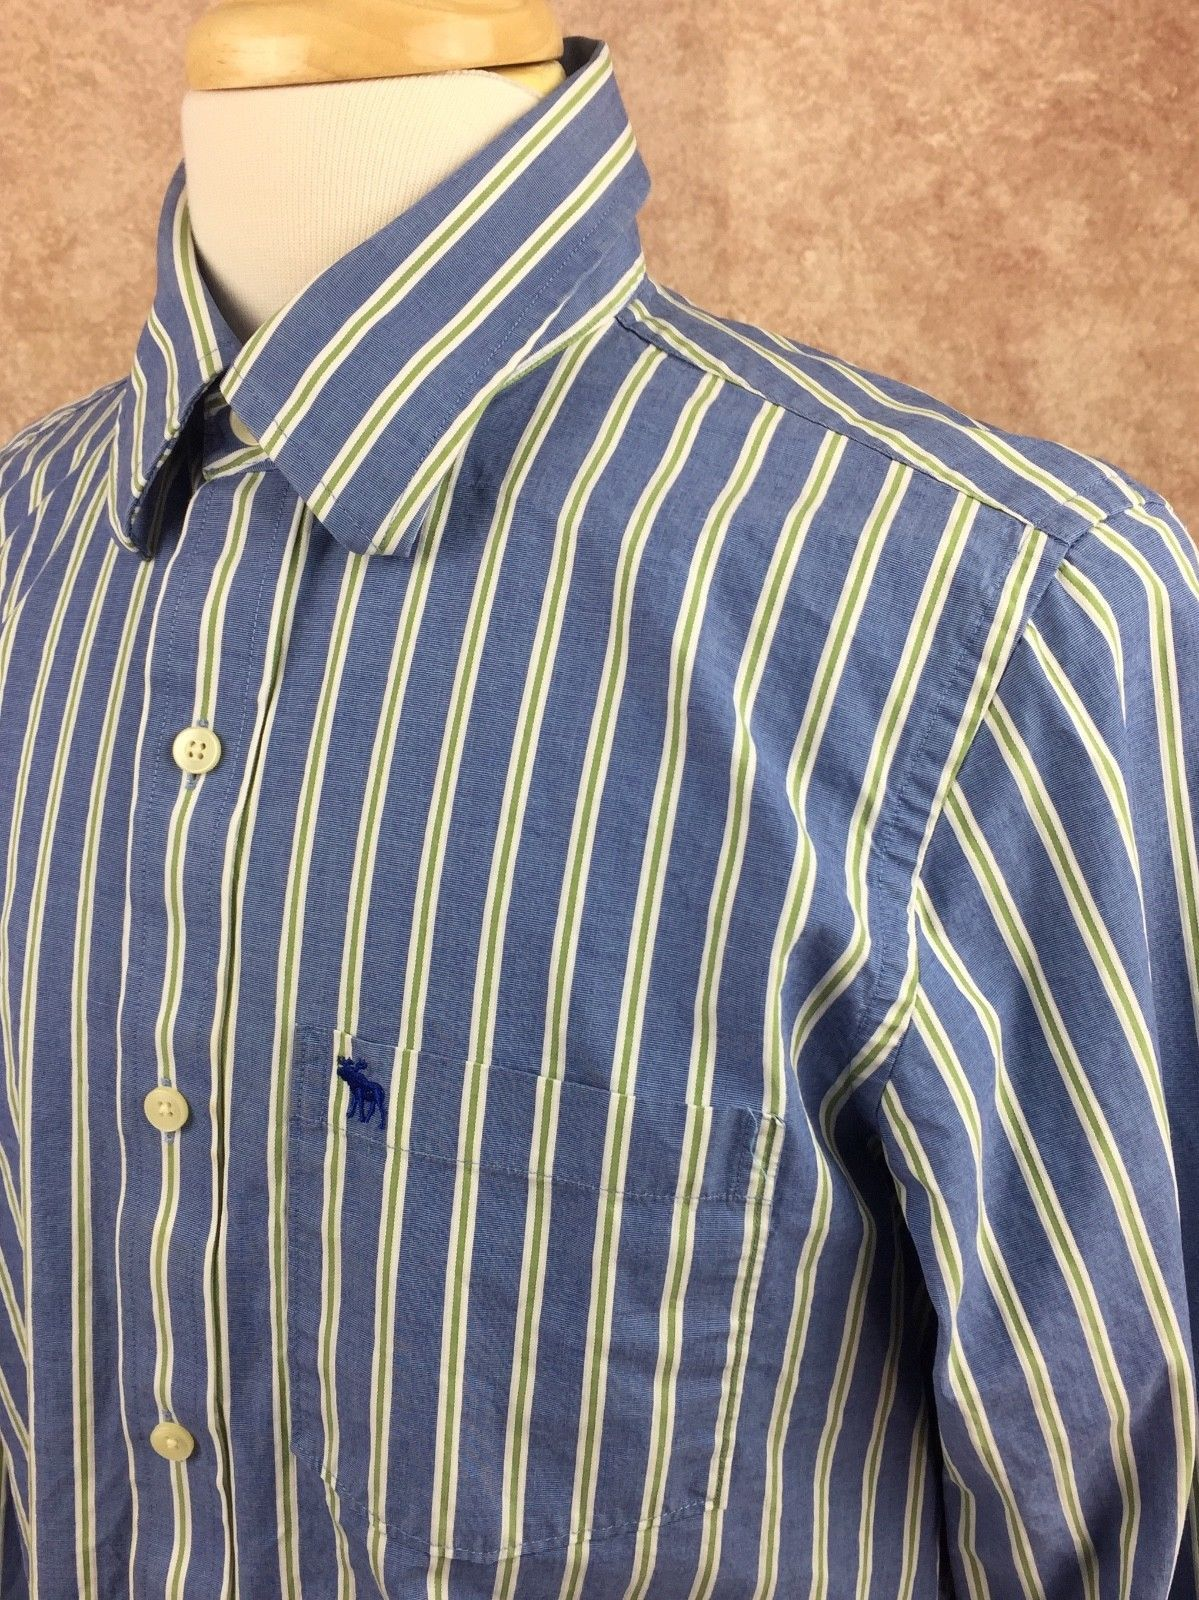 Abercrombie & Fitch Muscle Long Sleeve Button Down Shirt Blue Stripe Men's Large image 2